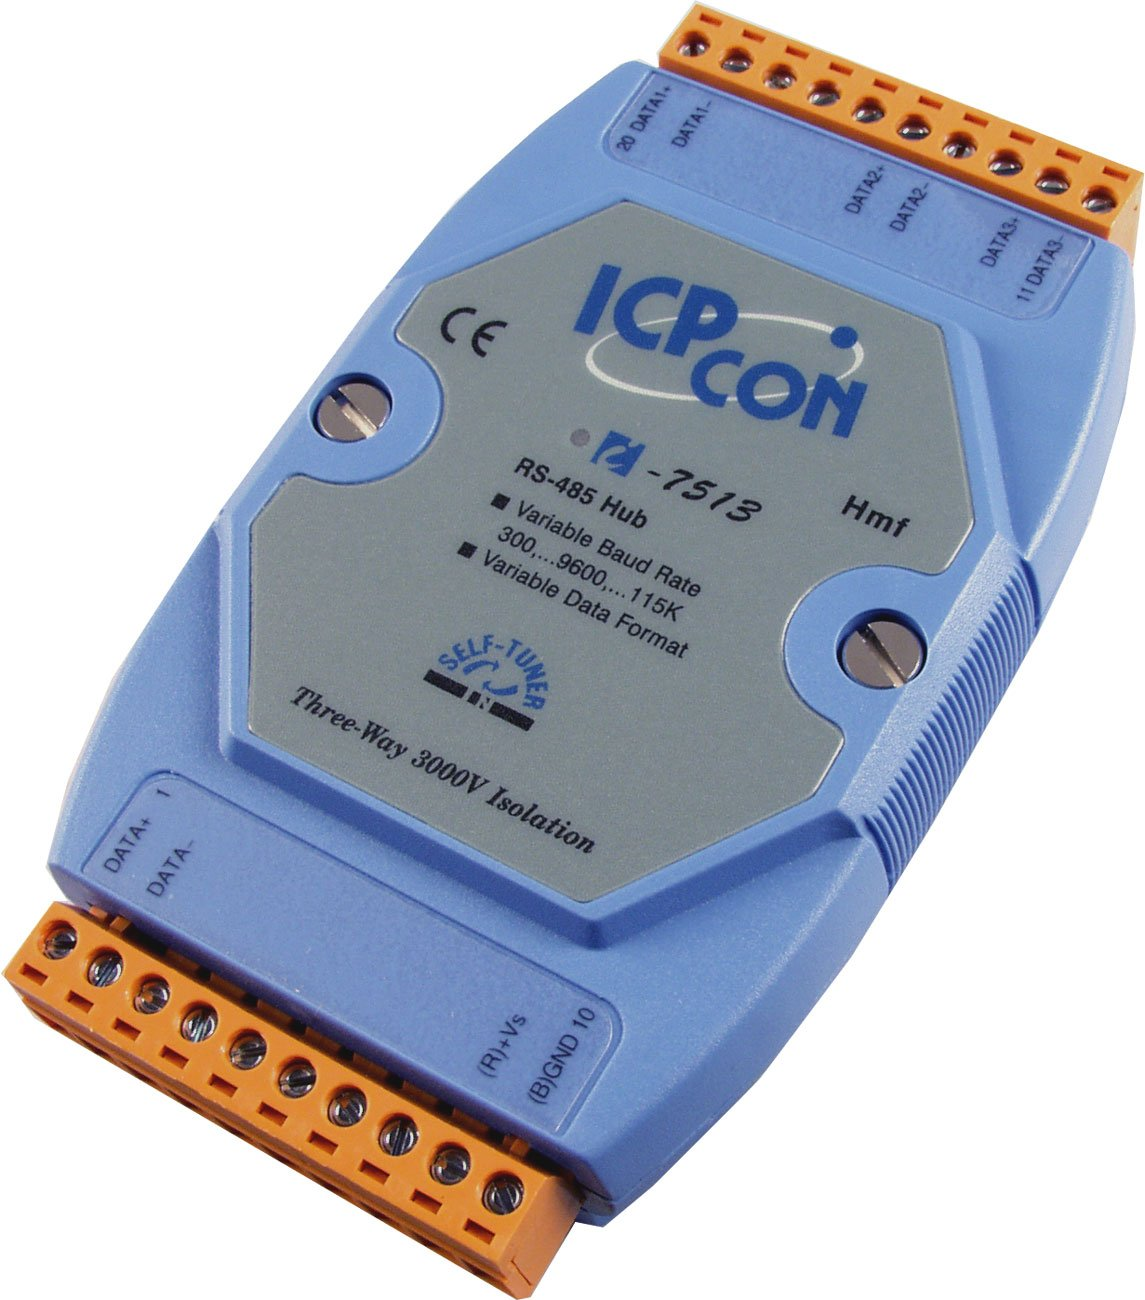 ICP DAS USA I-7513 Industrial 3-Way Isolated RS-485 Hub/Splitter with Din Rail Mount. Extends RS-485 network up to 4000 feet. by ICP DAS (Image #1)